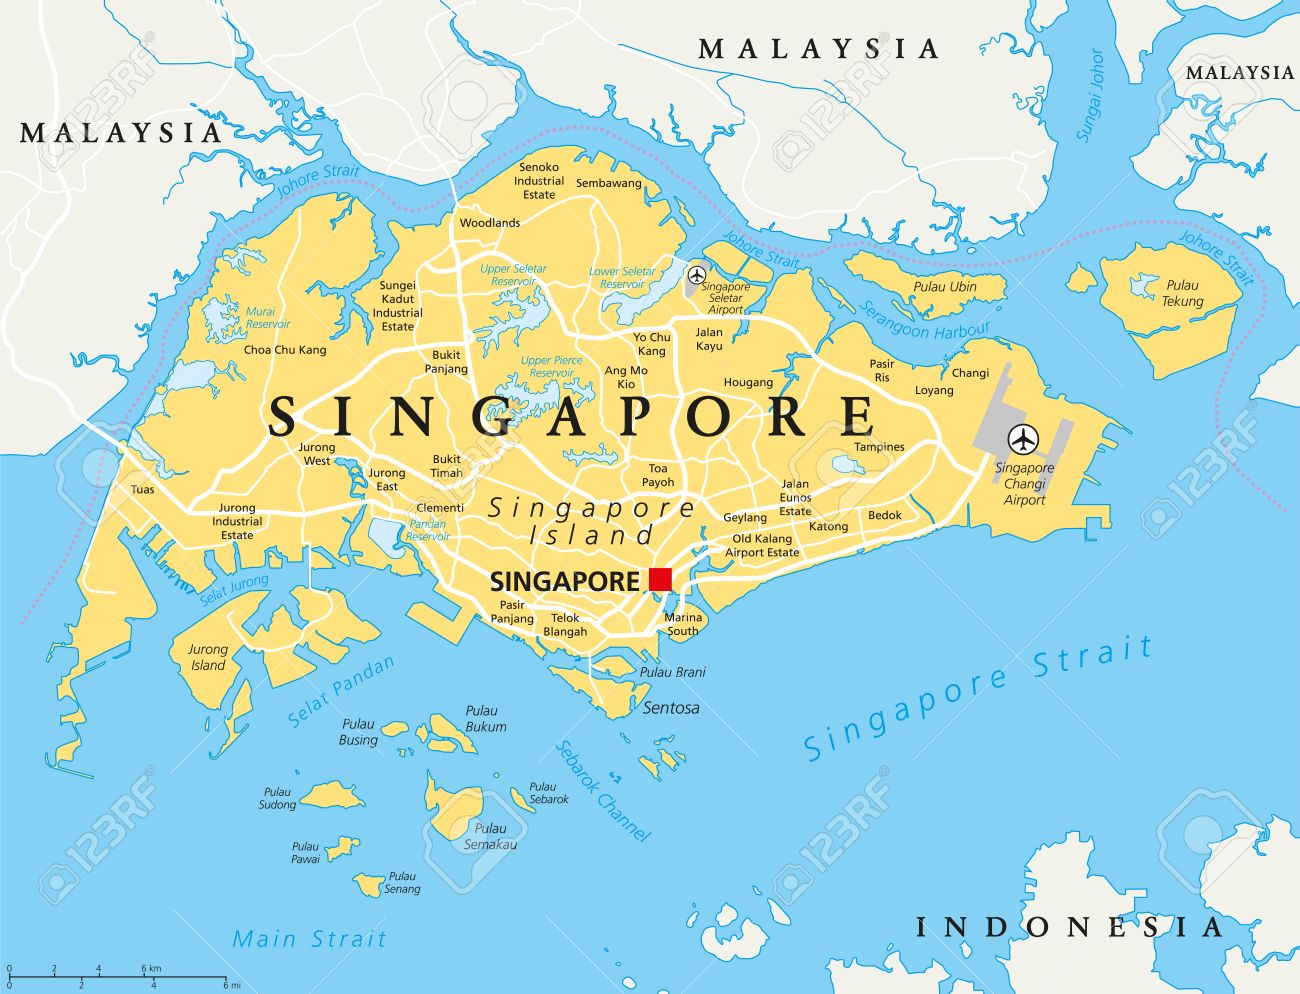 Singapore Islands Map Singapore Island Political Map With Capital Singapore, National